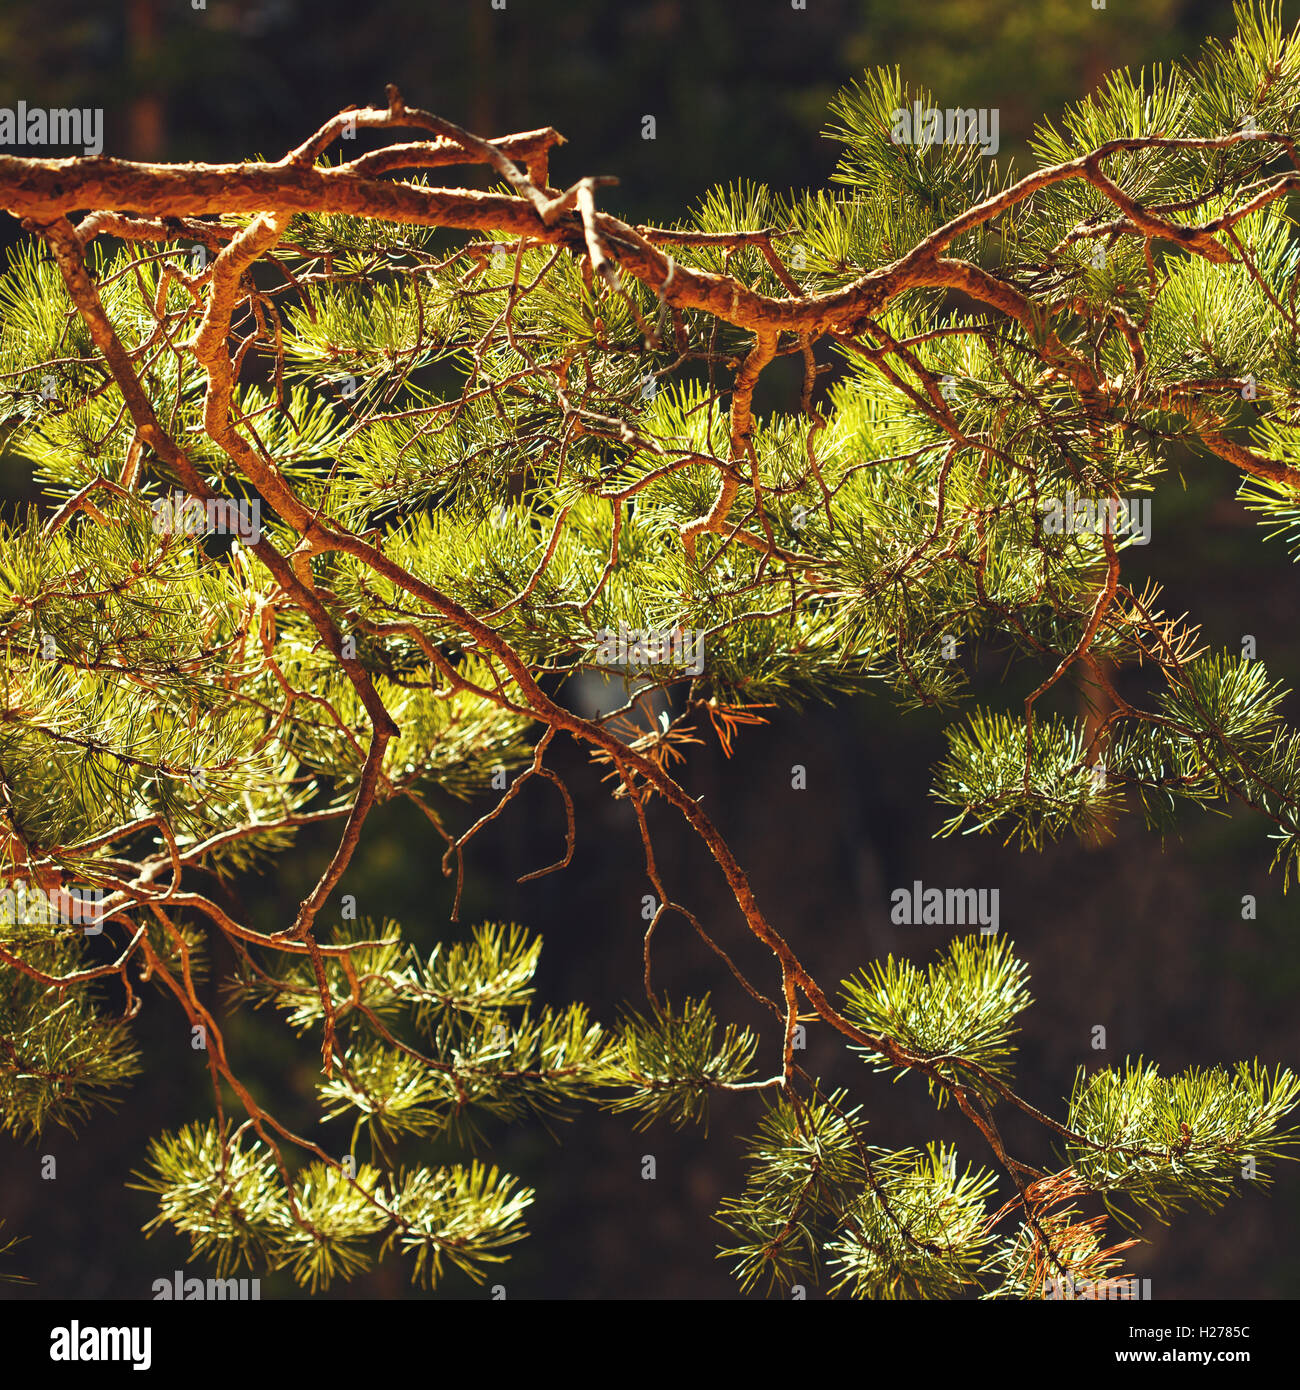 Pine tree branch close up, confierous tree - Stock Image